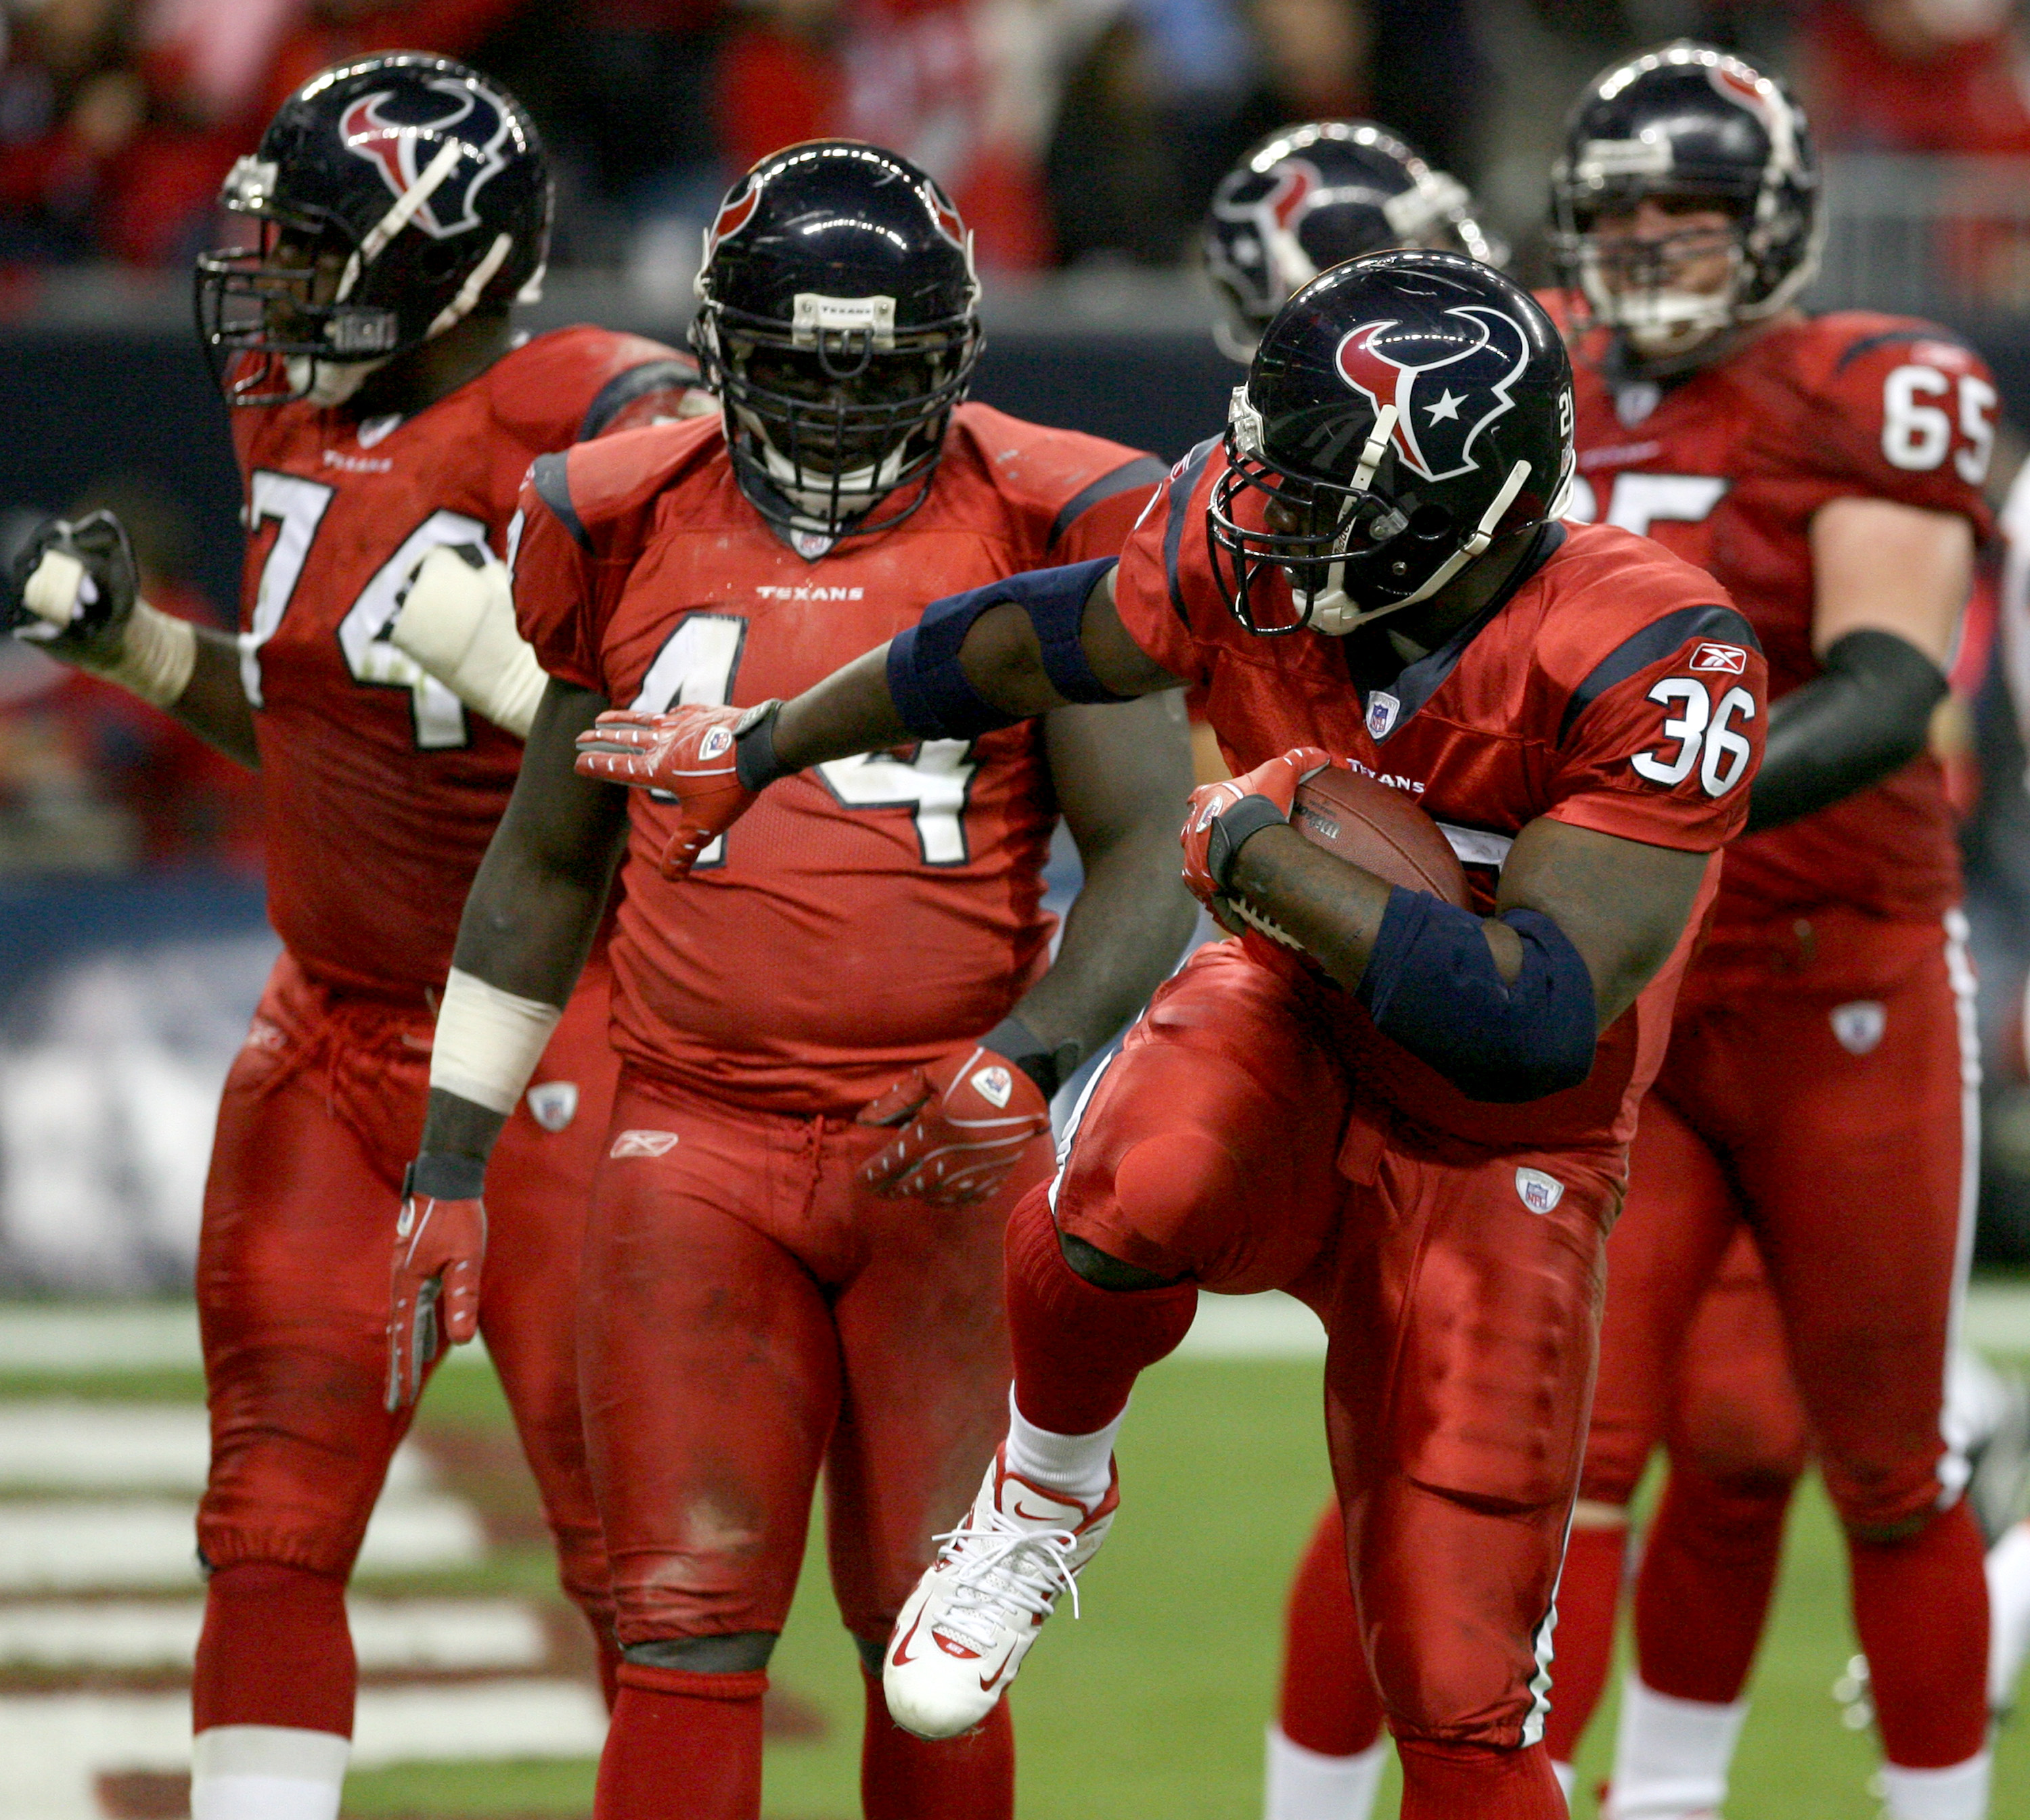 HOUSTON - DECEMBER 13: Ron Dayne #36 of the Houston Texans celebrates after he scored a rushing touchdown during the NFL game against the Denver Broncos at  Reliant Stadium on December 13, 2007 in Houston, Texas. (Photo by Thomas B.  Shea/Getty Images)